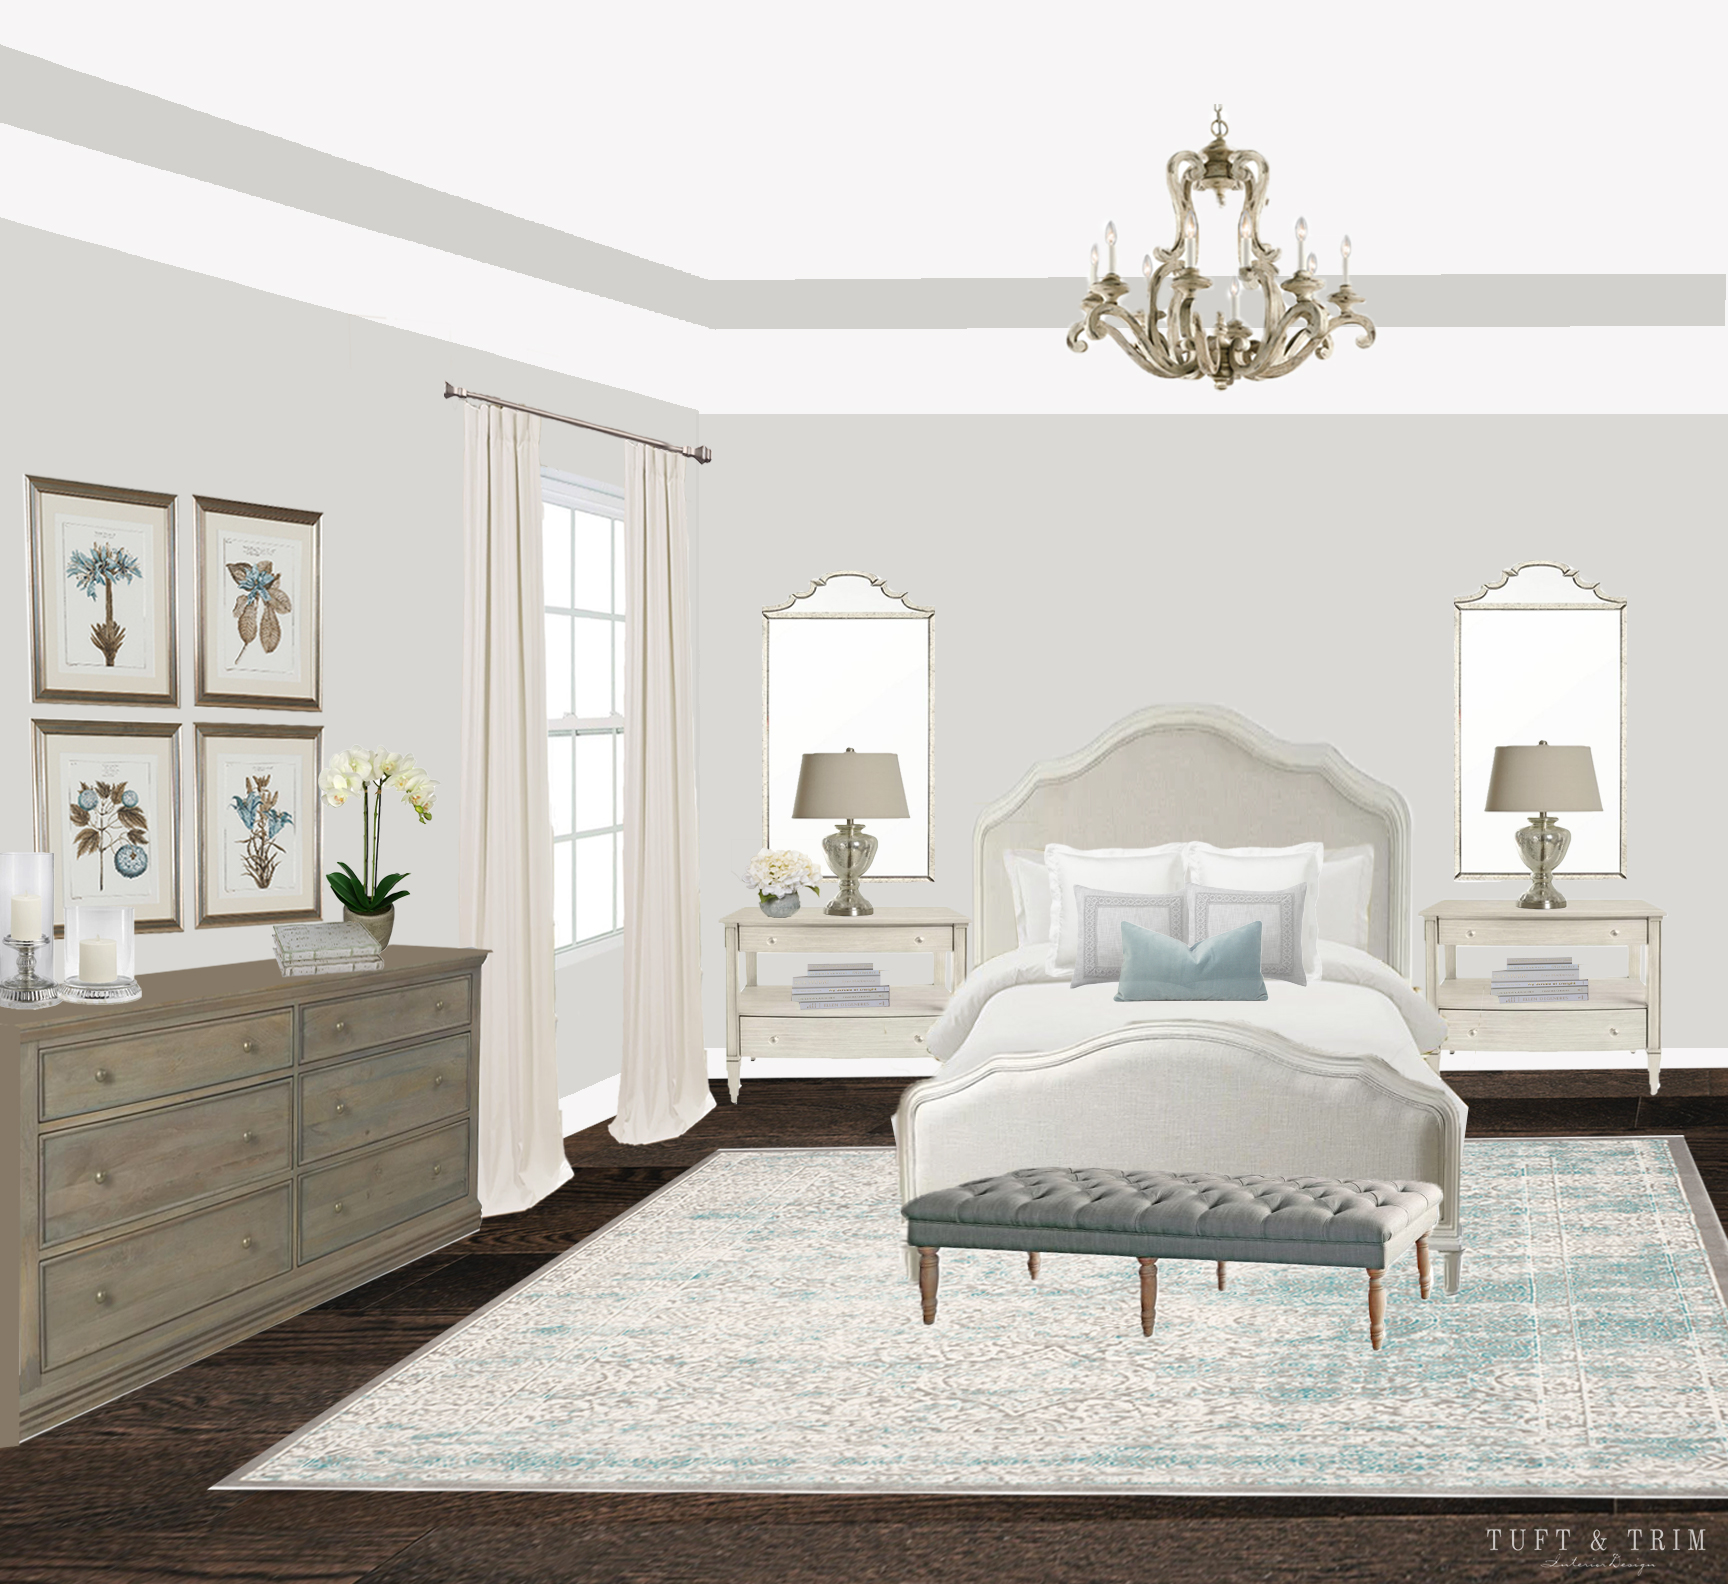 French Chic Bedroom e-Design - Tuft & Trim